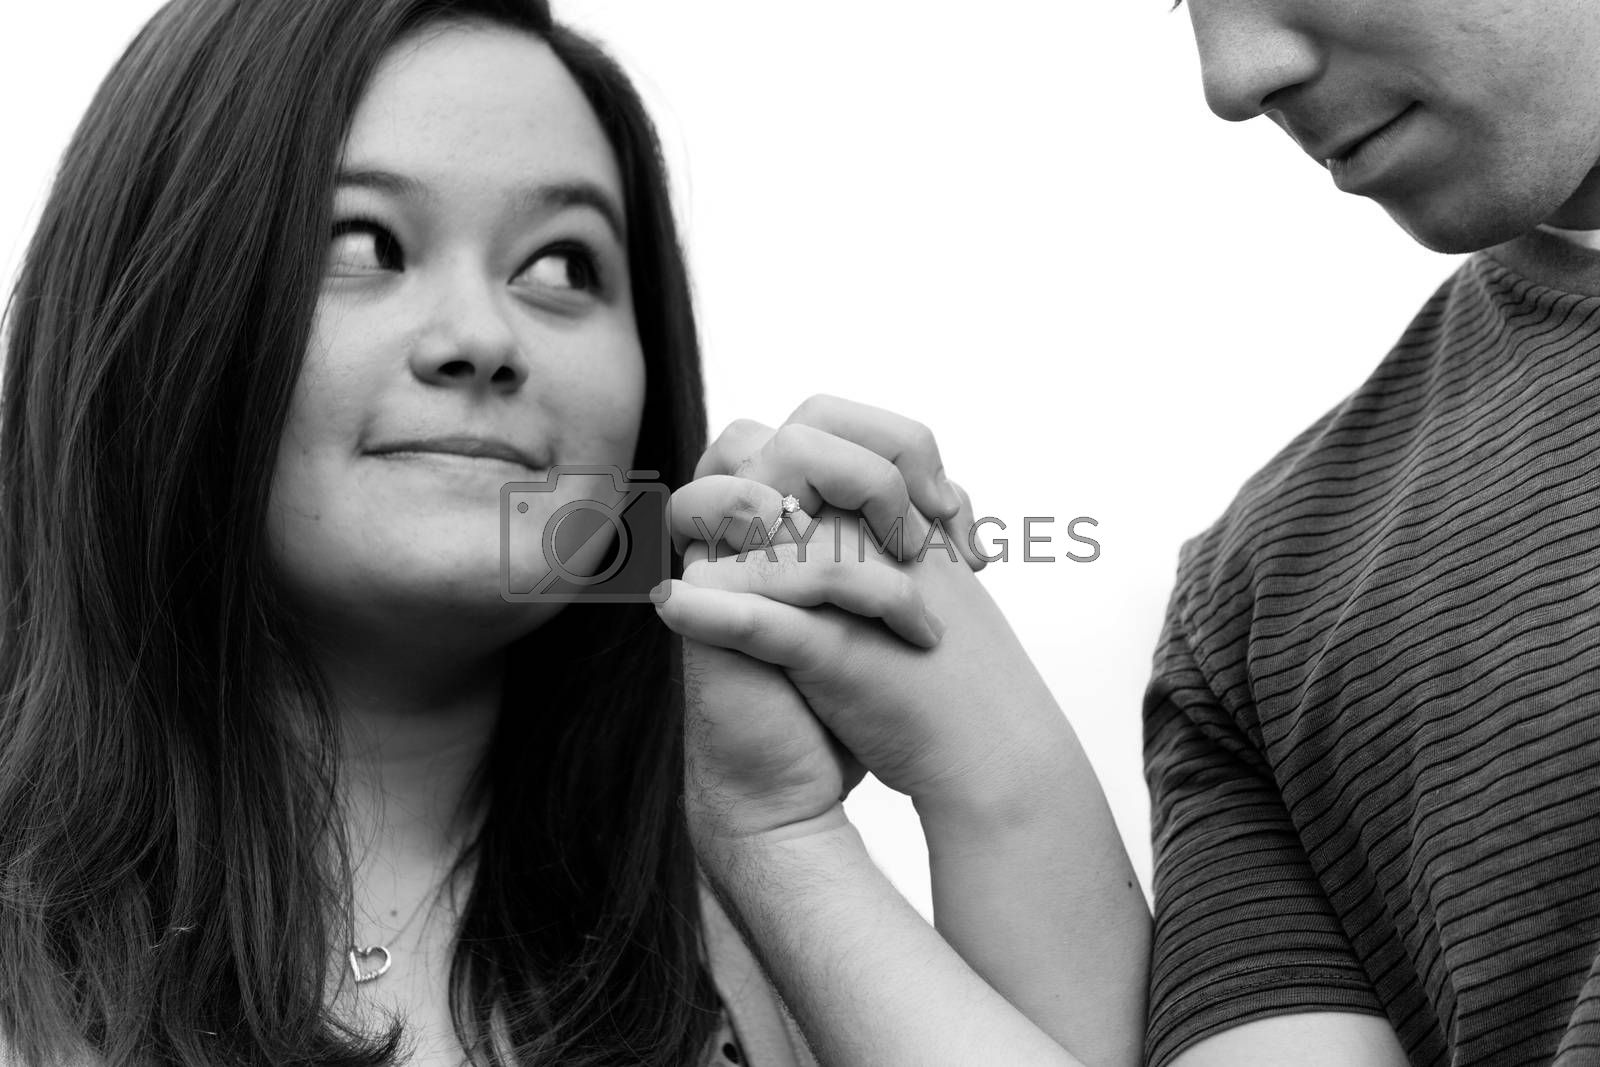 Young couple holding hands and showing the diamond engagement ring.  Shallow depth of field with sharpest focus on the ring.